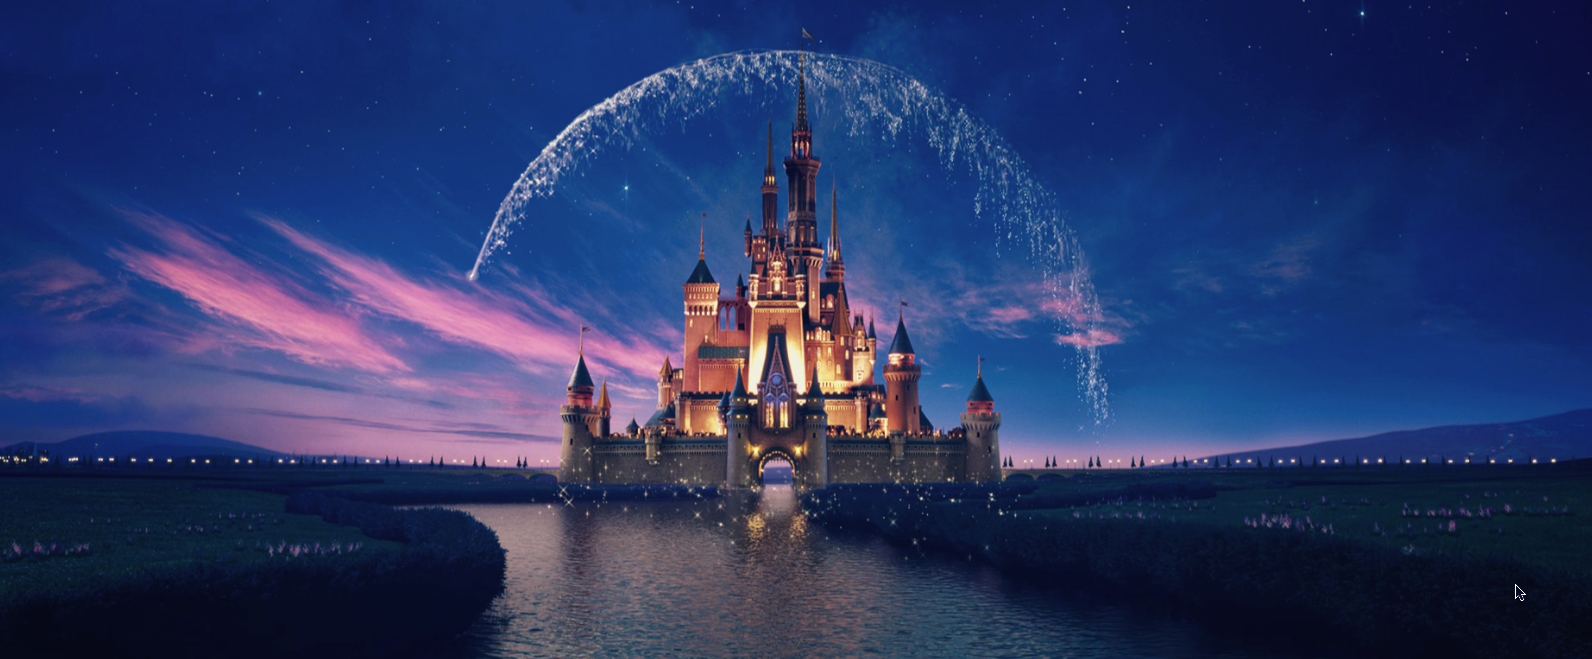 Disney castle with falling star as an example of a magician brand